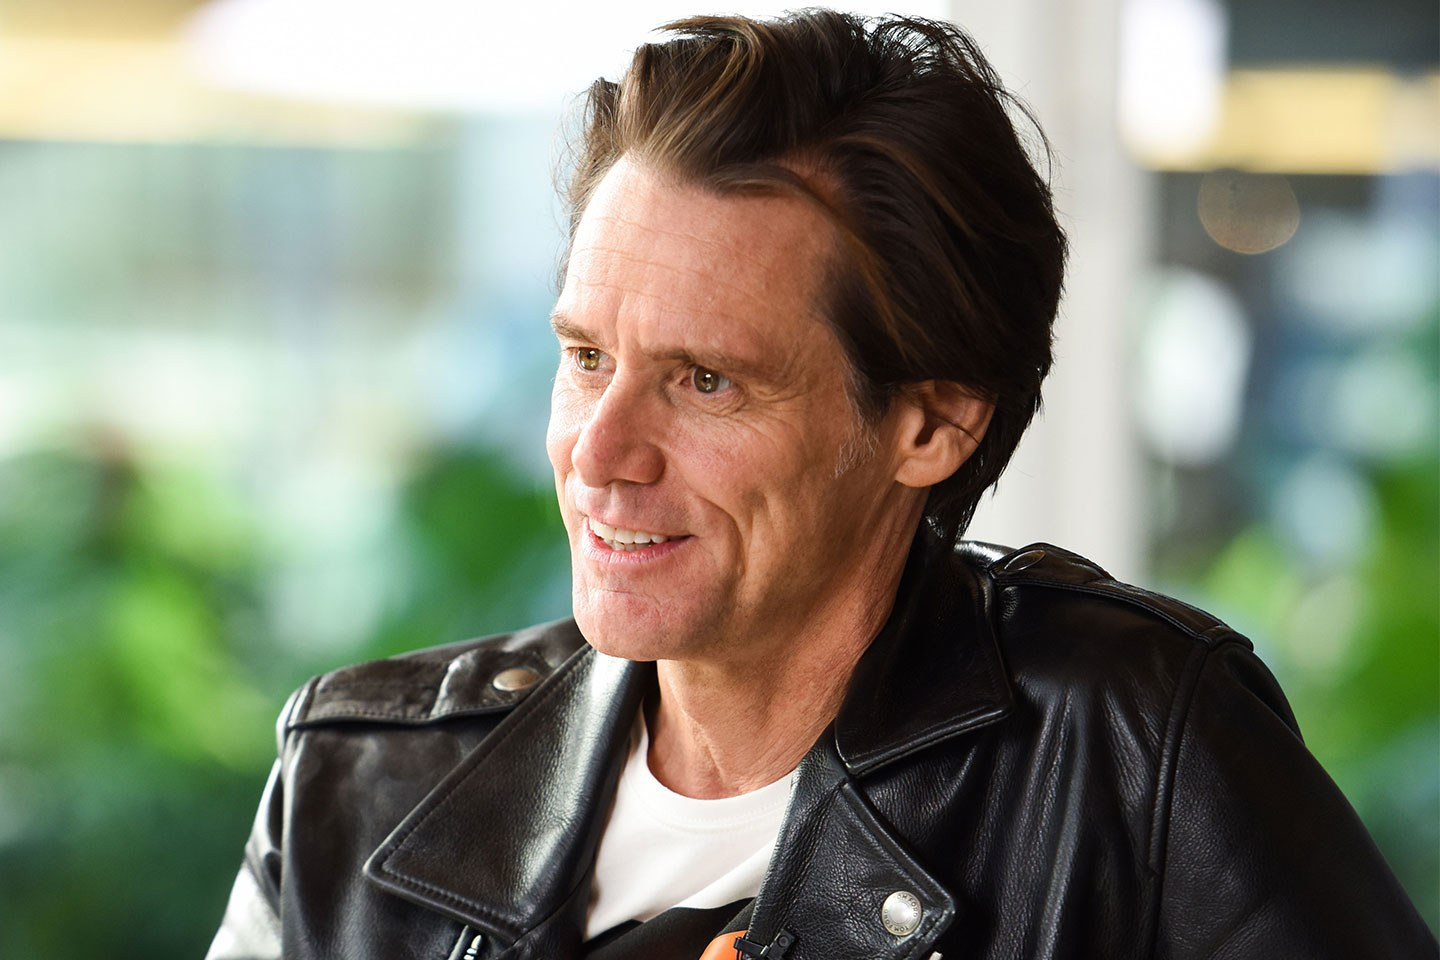 There's a Lot to Learn From Jim Carrey's Tumultuous Life Jim Carrey